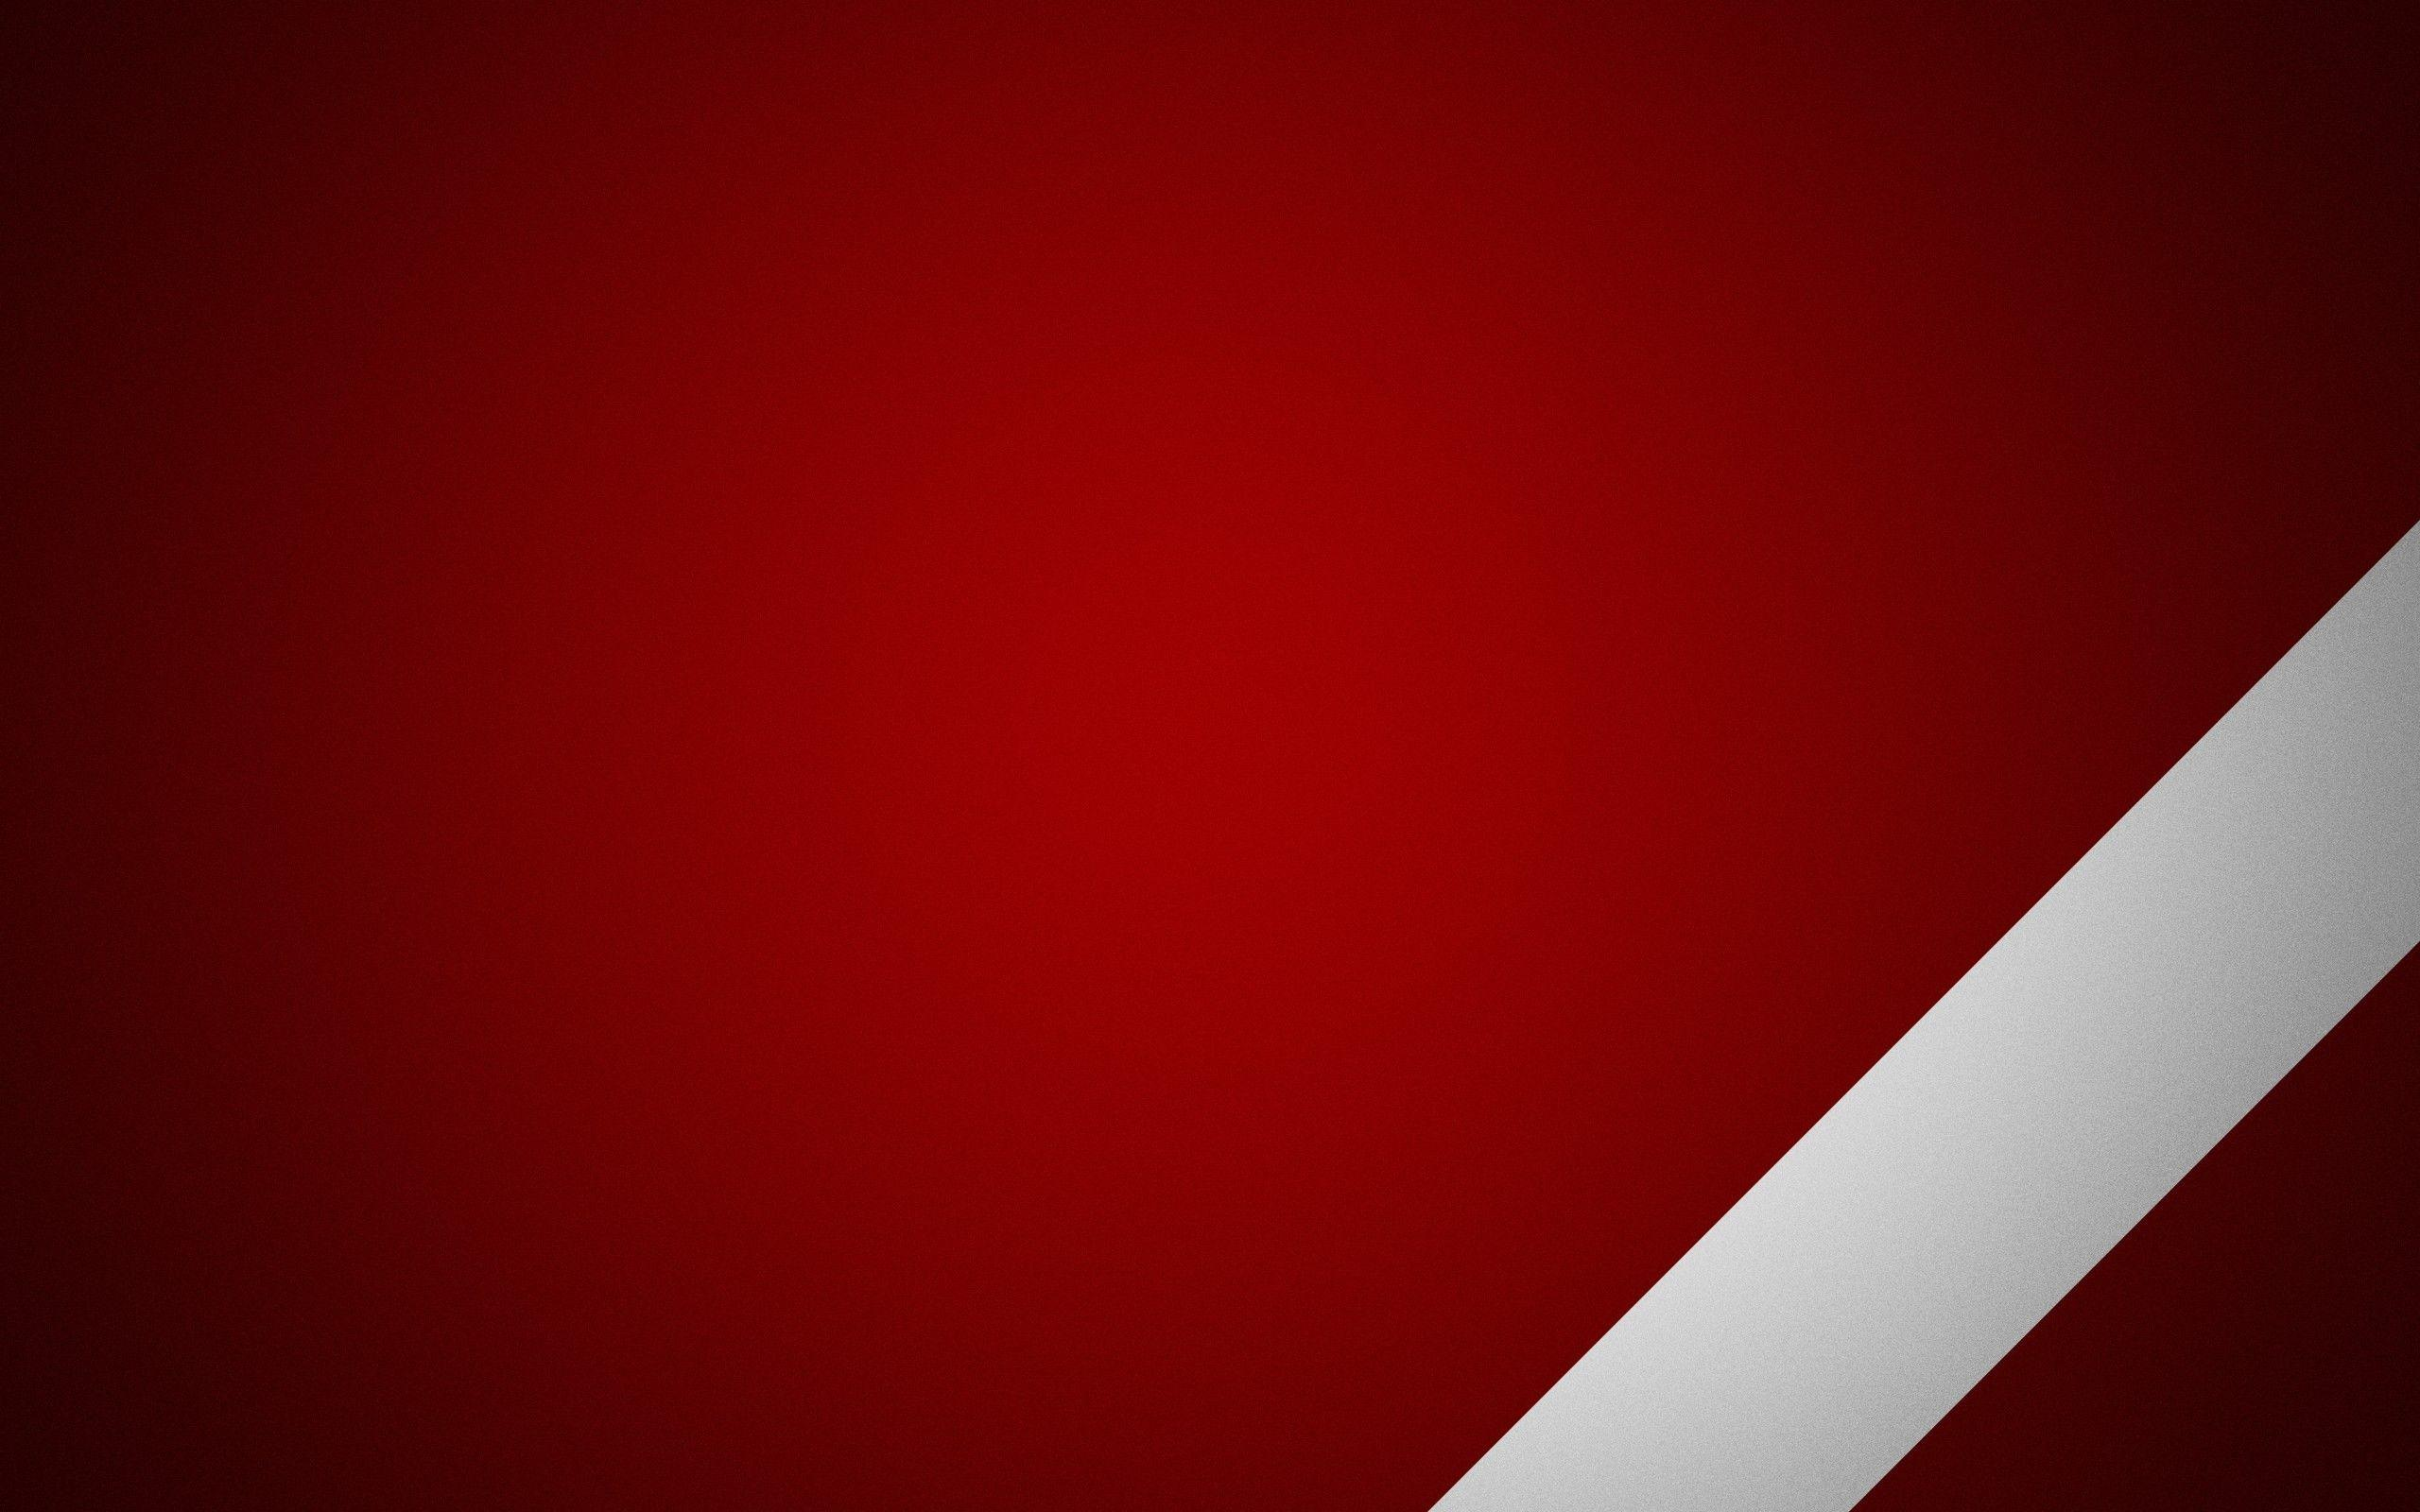 Red And White Backgrounds  Wallpaper Cave